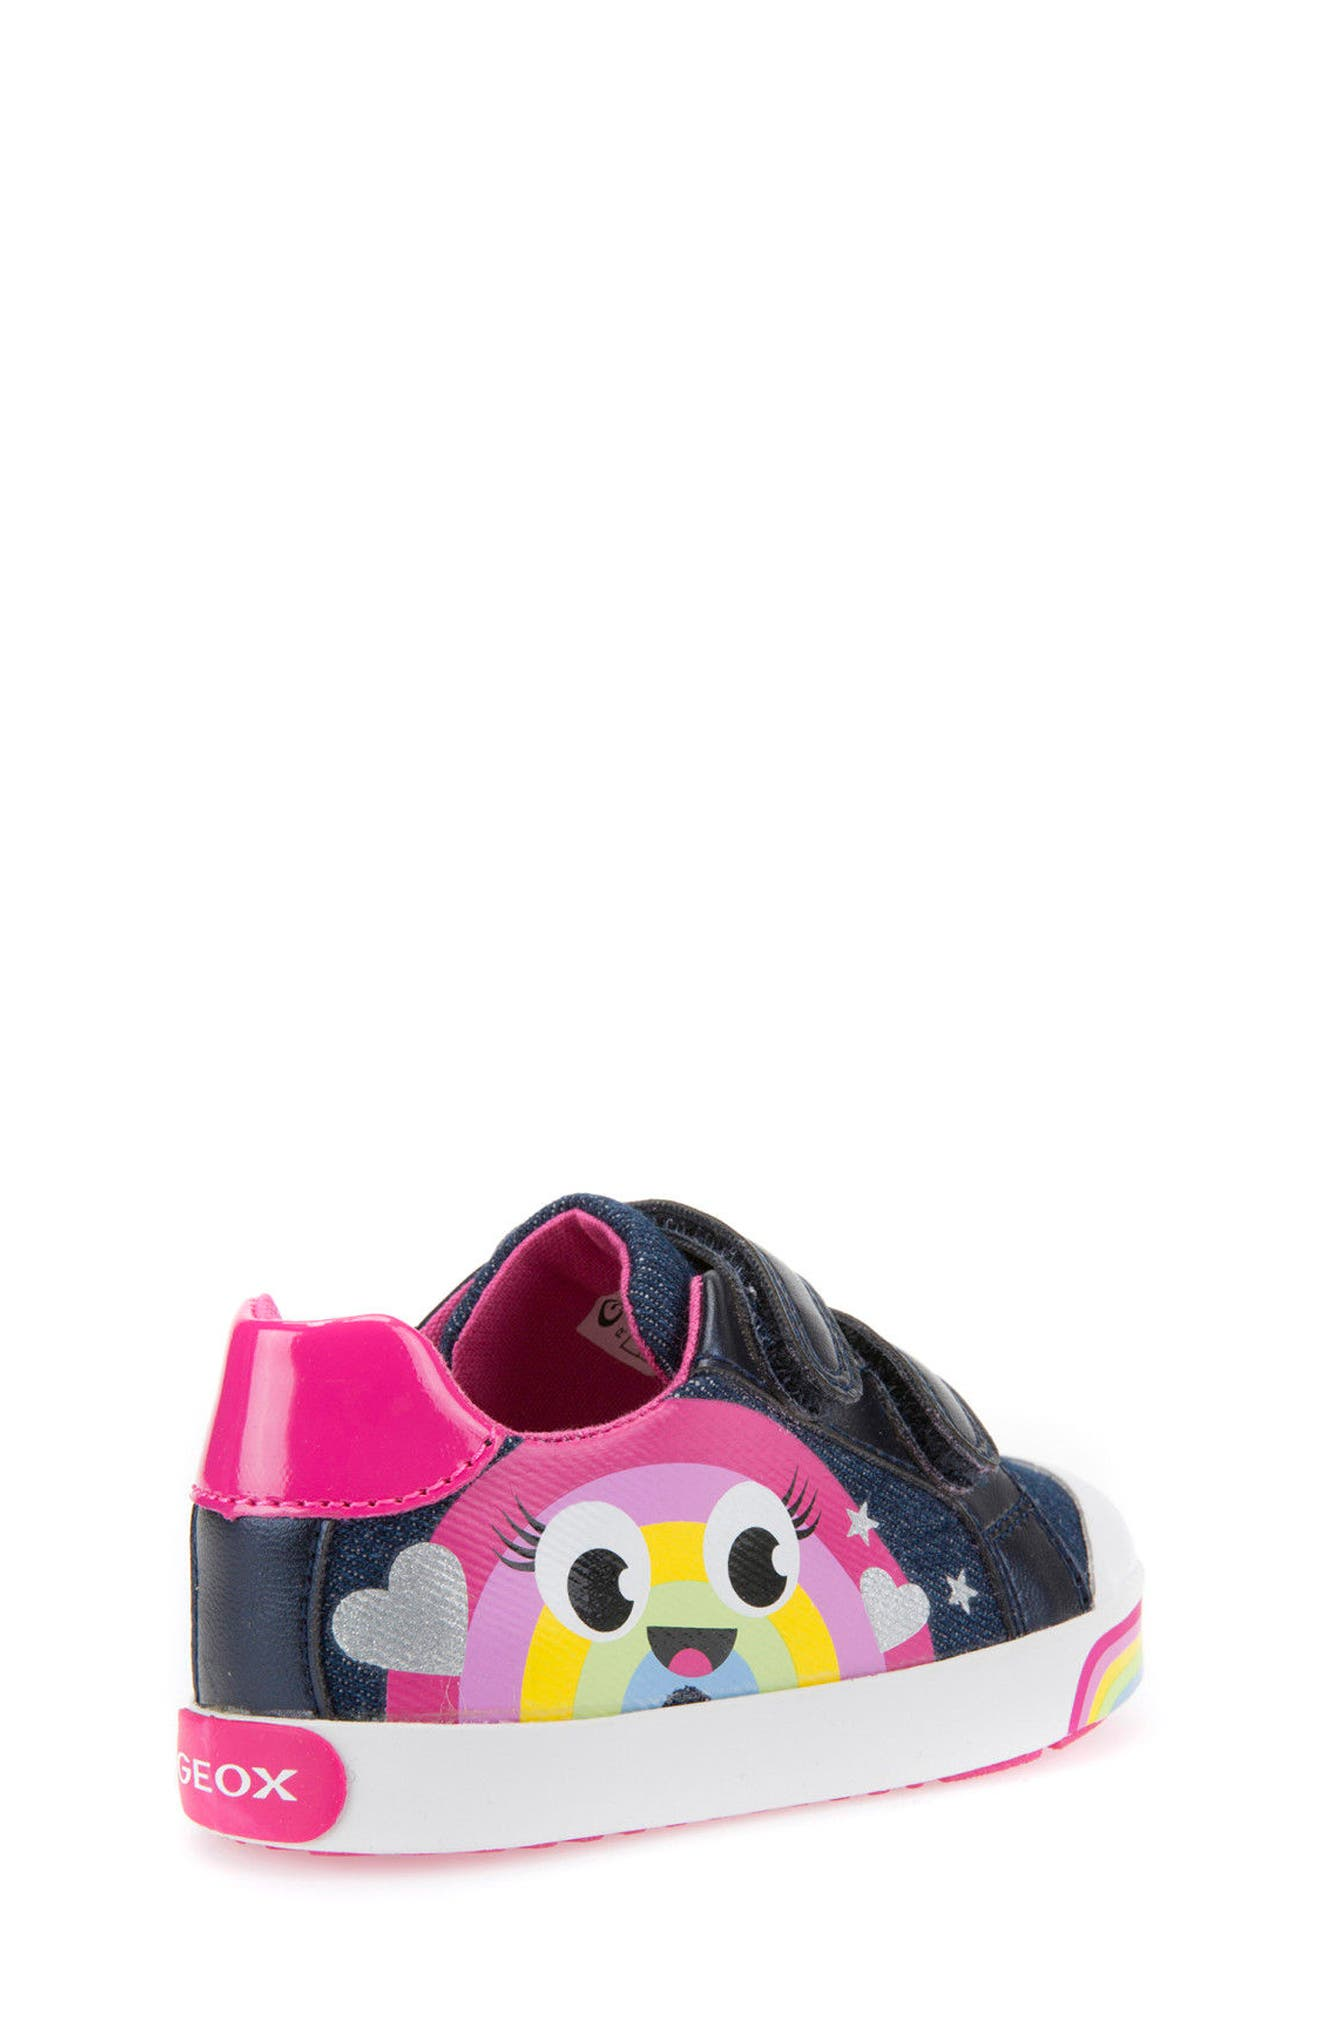 Kilwi Low Top Sneaker,                             Alternate thumbnail 2, color,                             AVIO/ MULTICOLOR